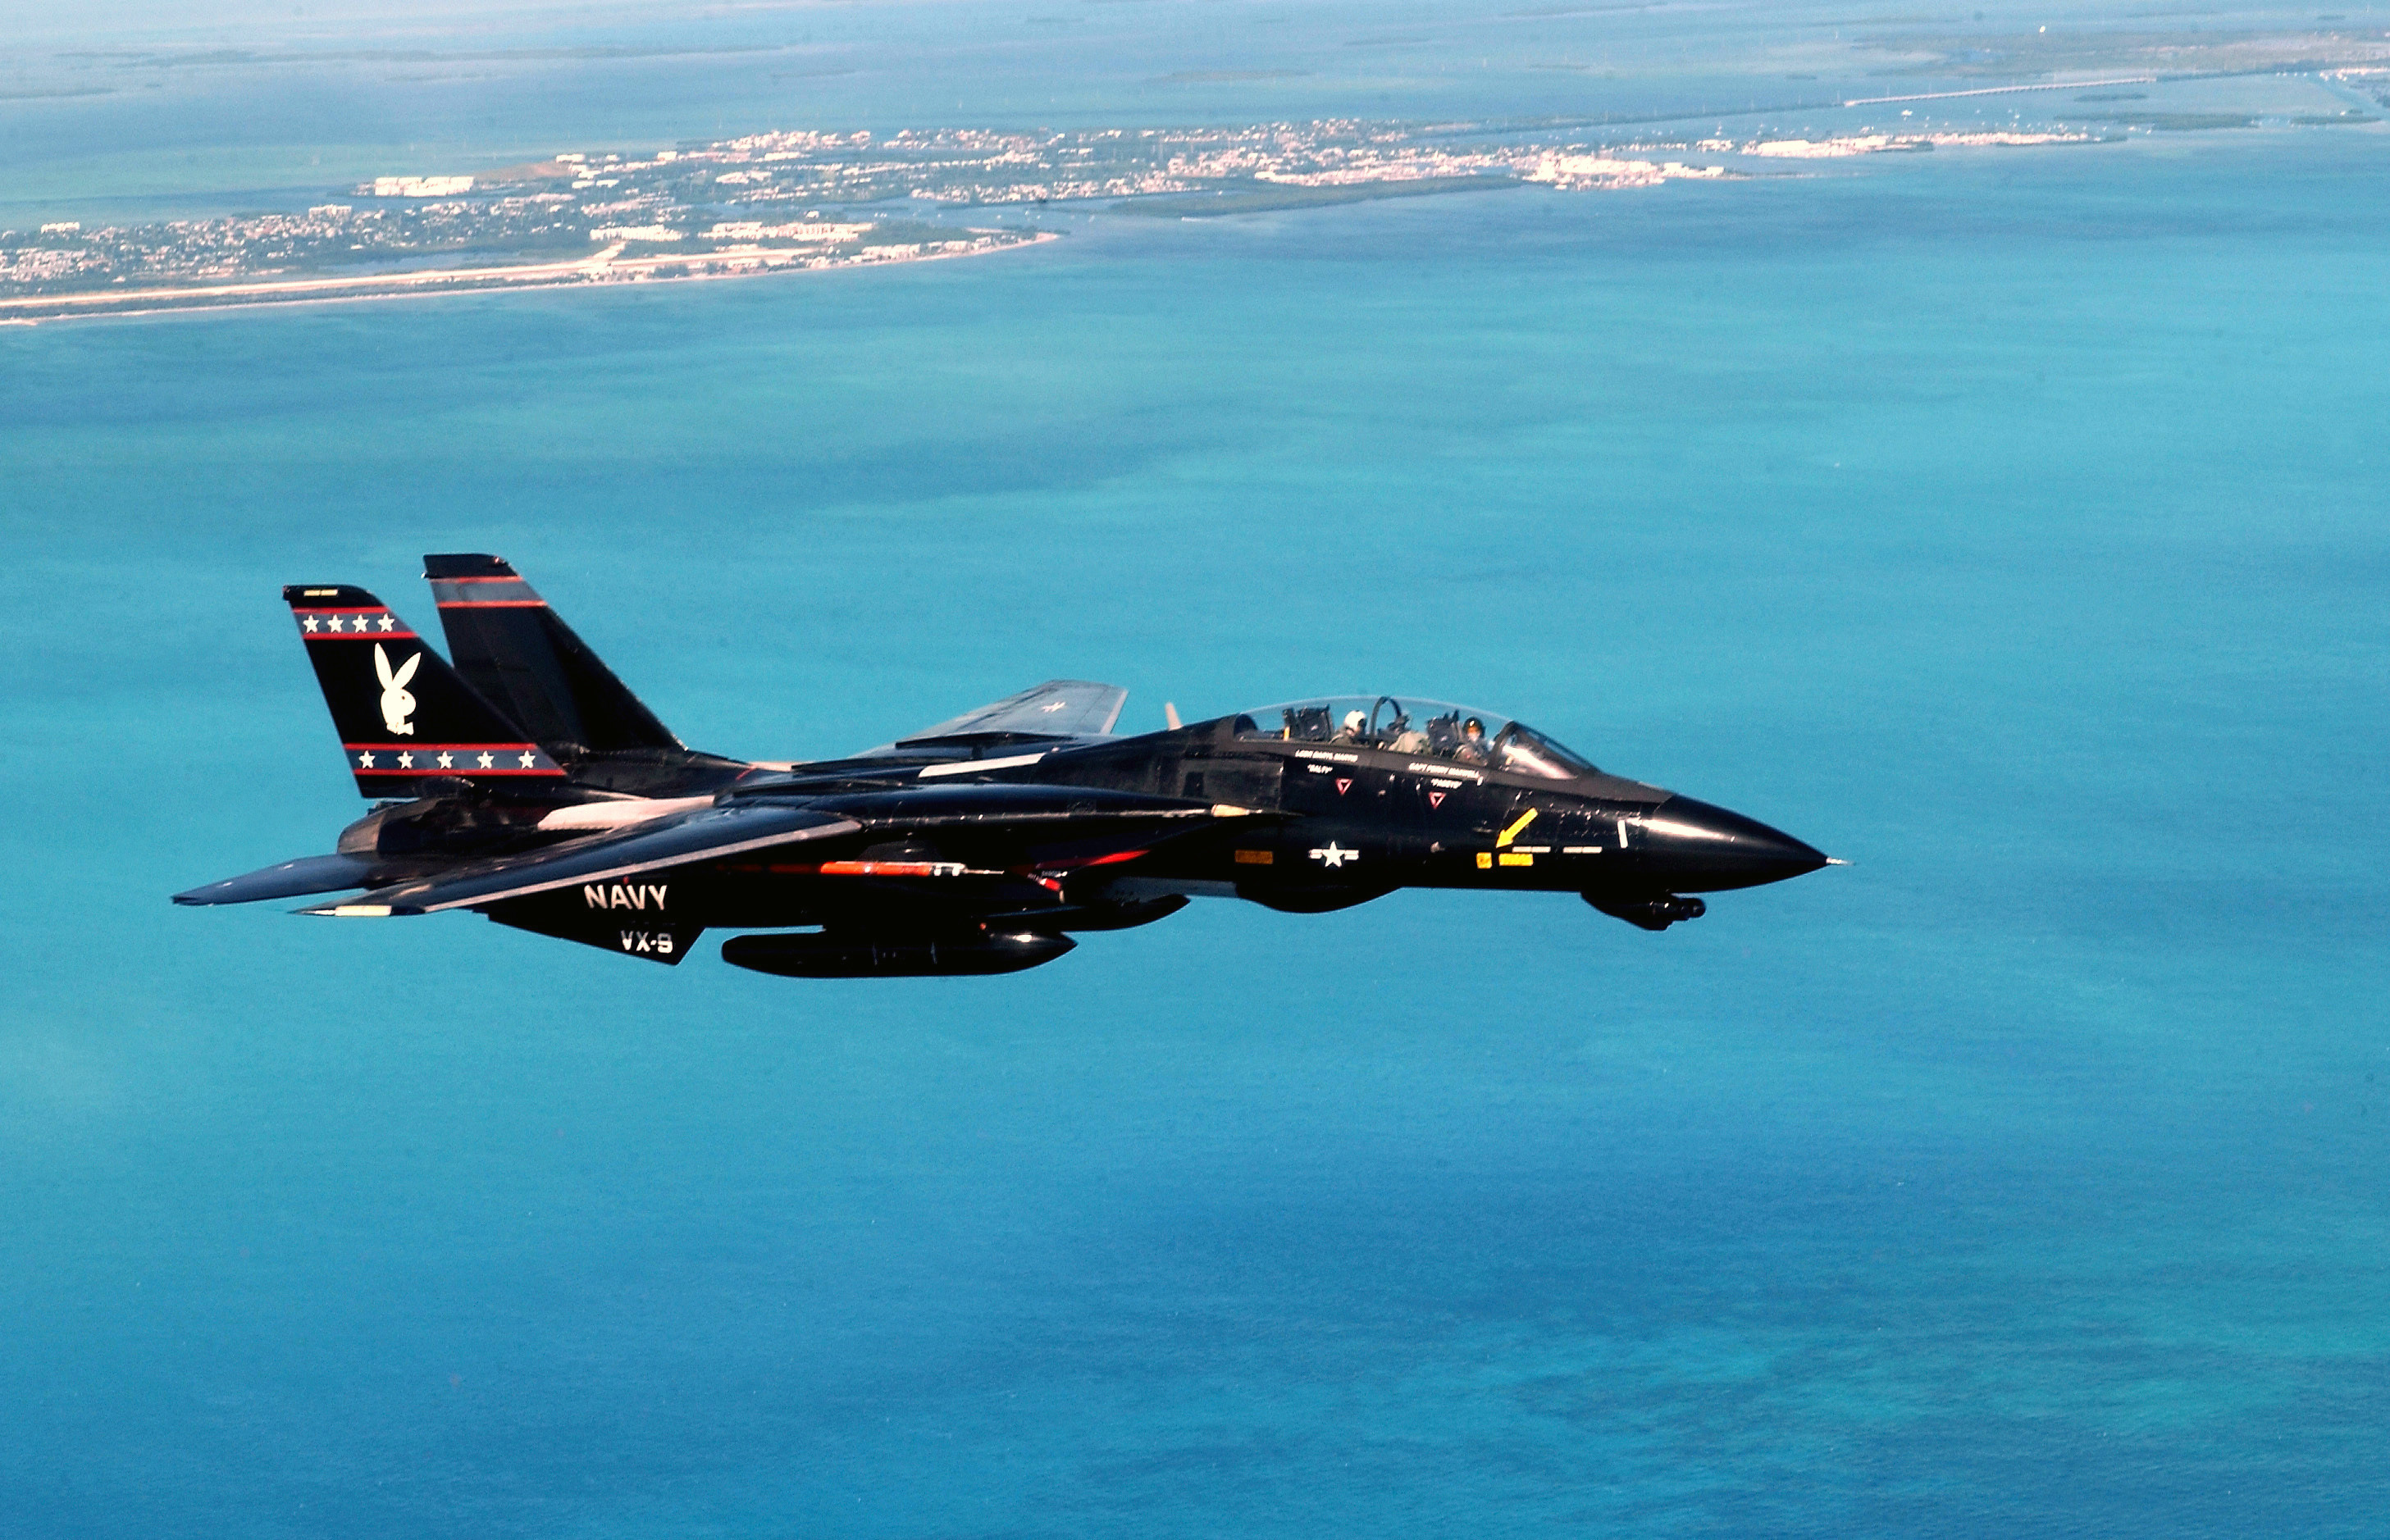 F 14 Tomcat HD Wallpapers amp Pictures  Hd Wallpapers